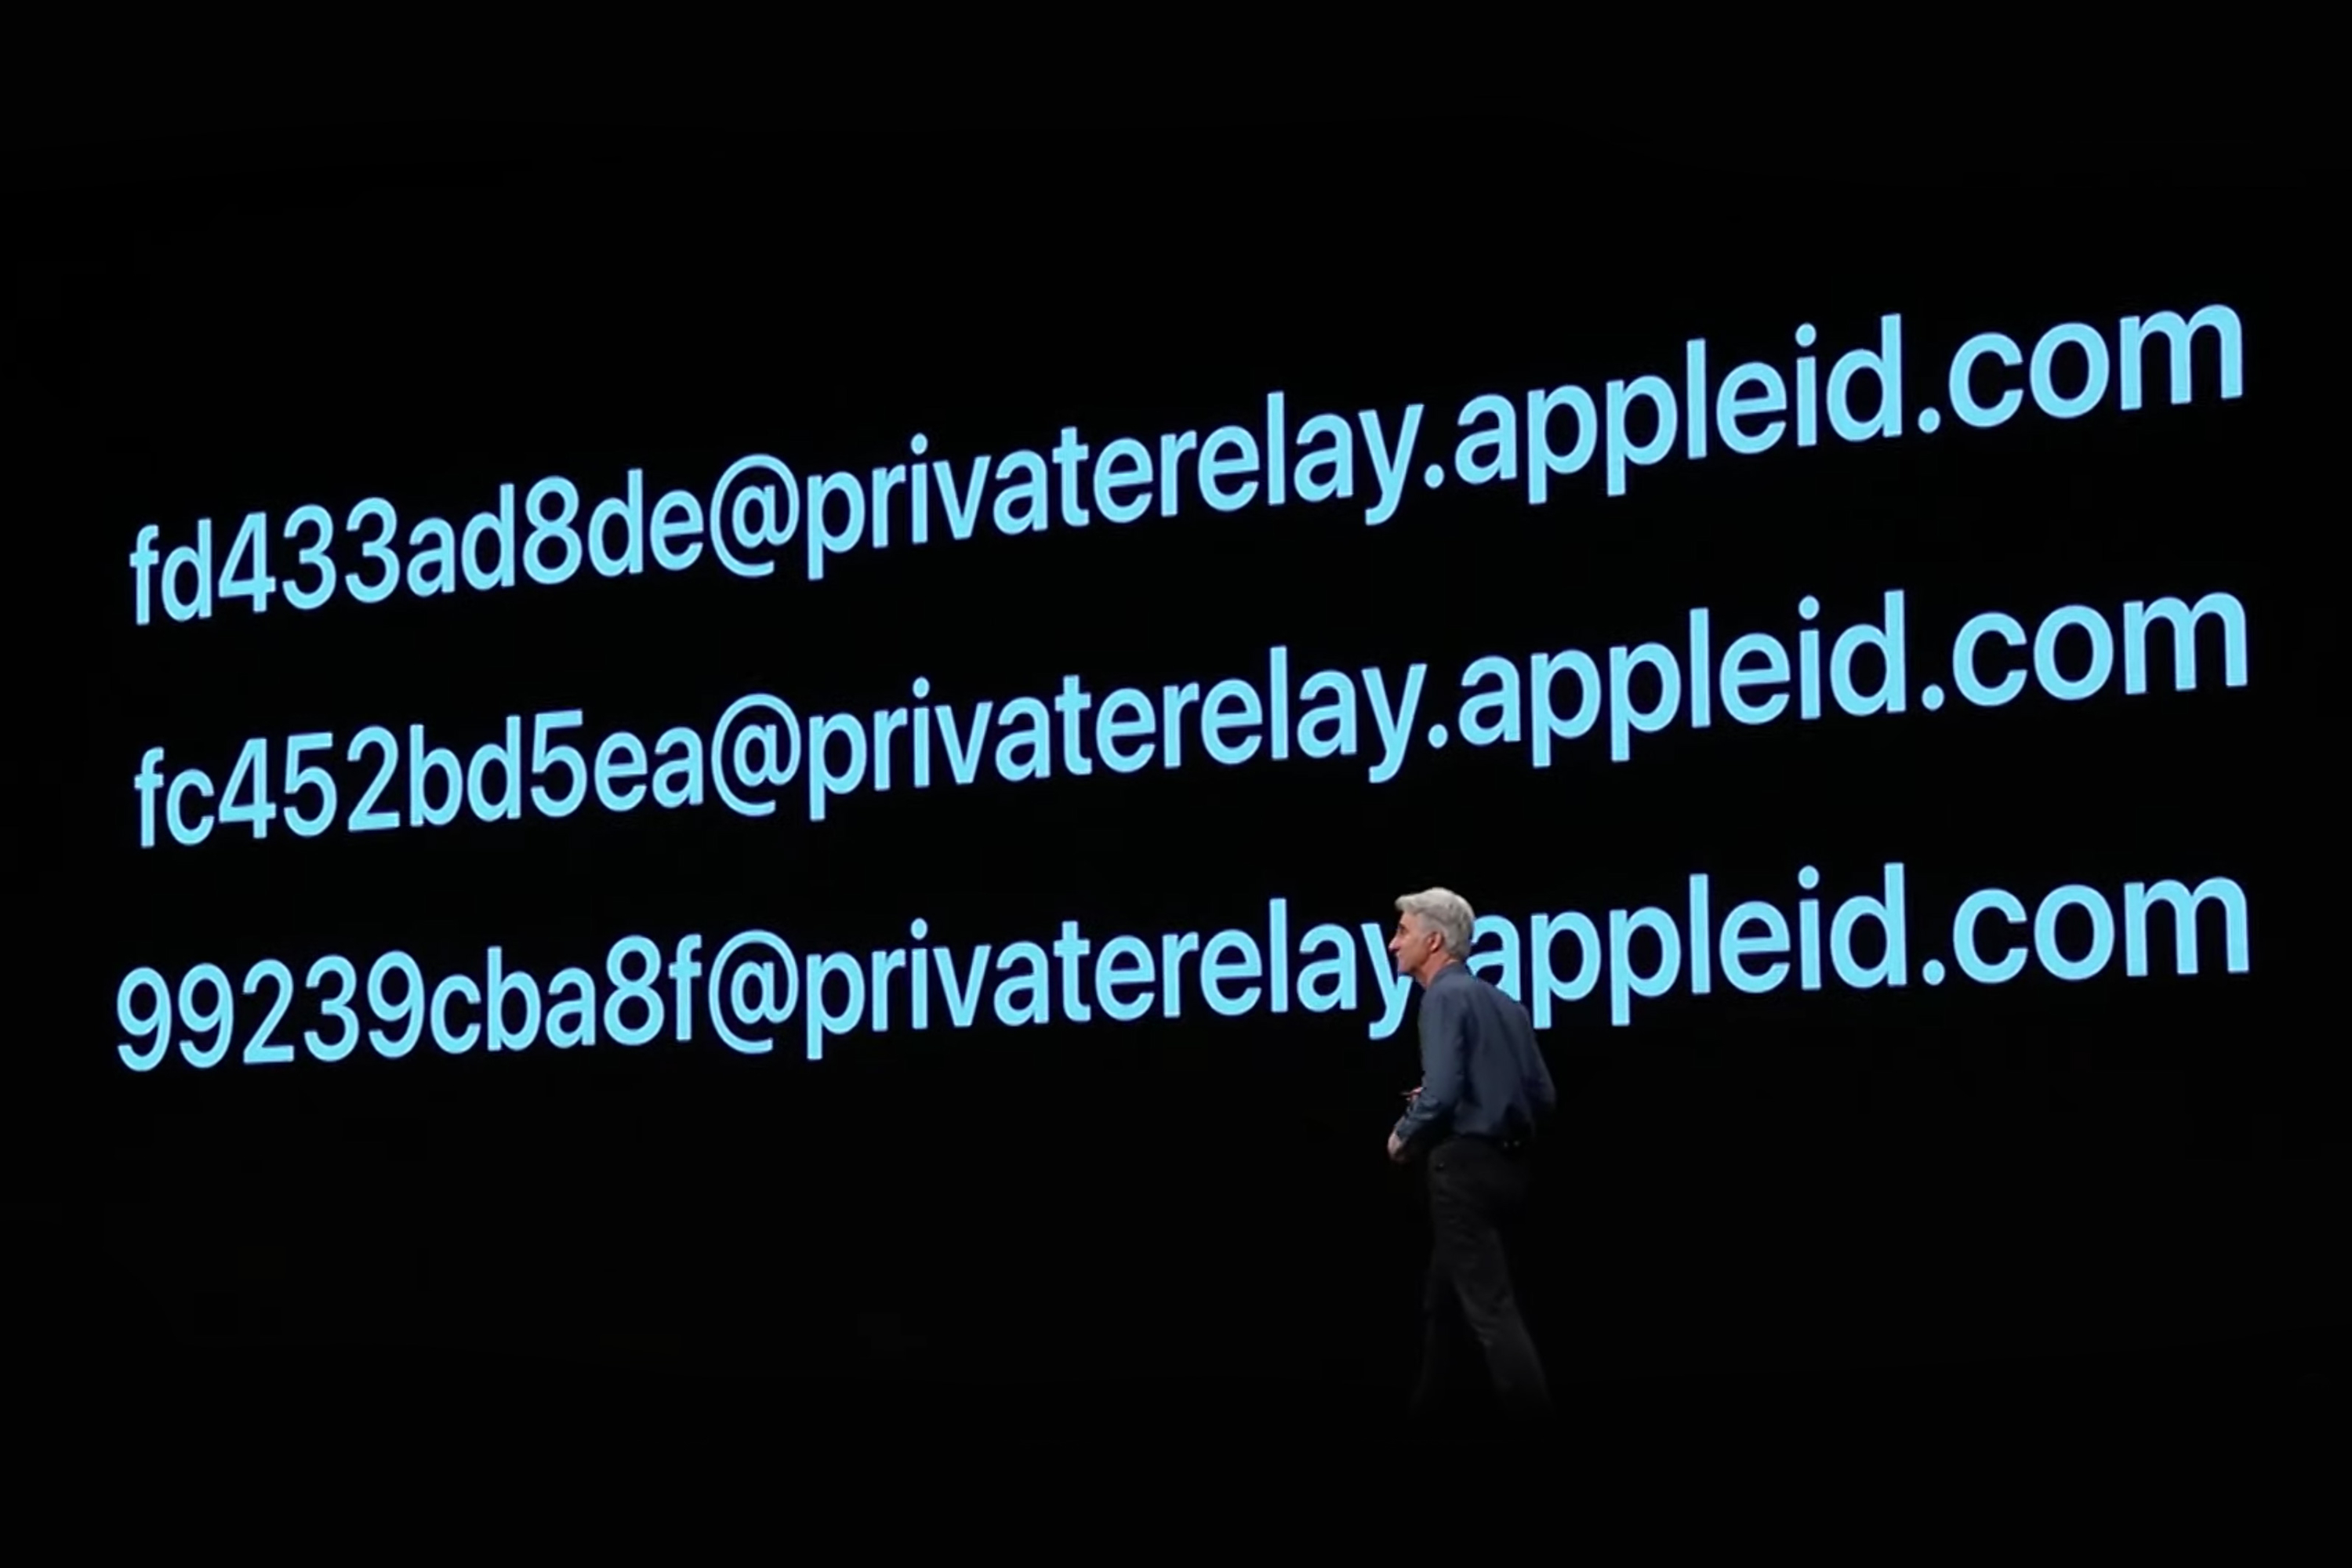 At WWDC, Apple says it will block marketers' access to email addresses